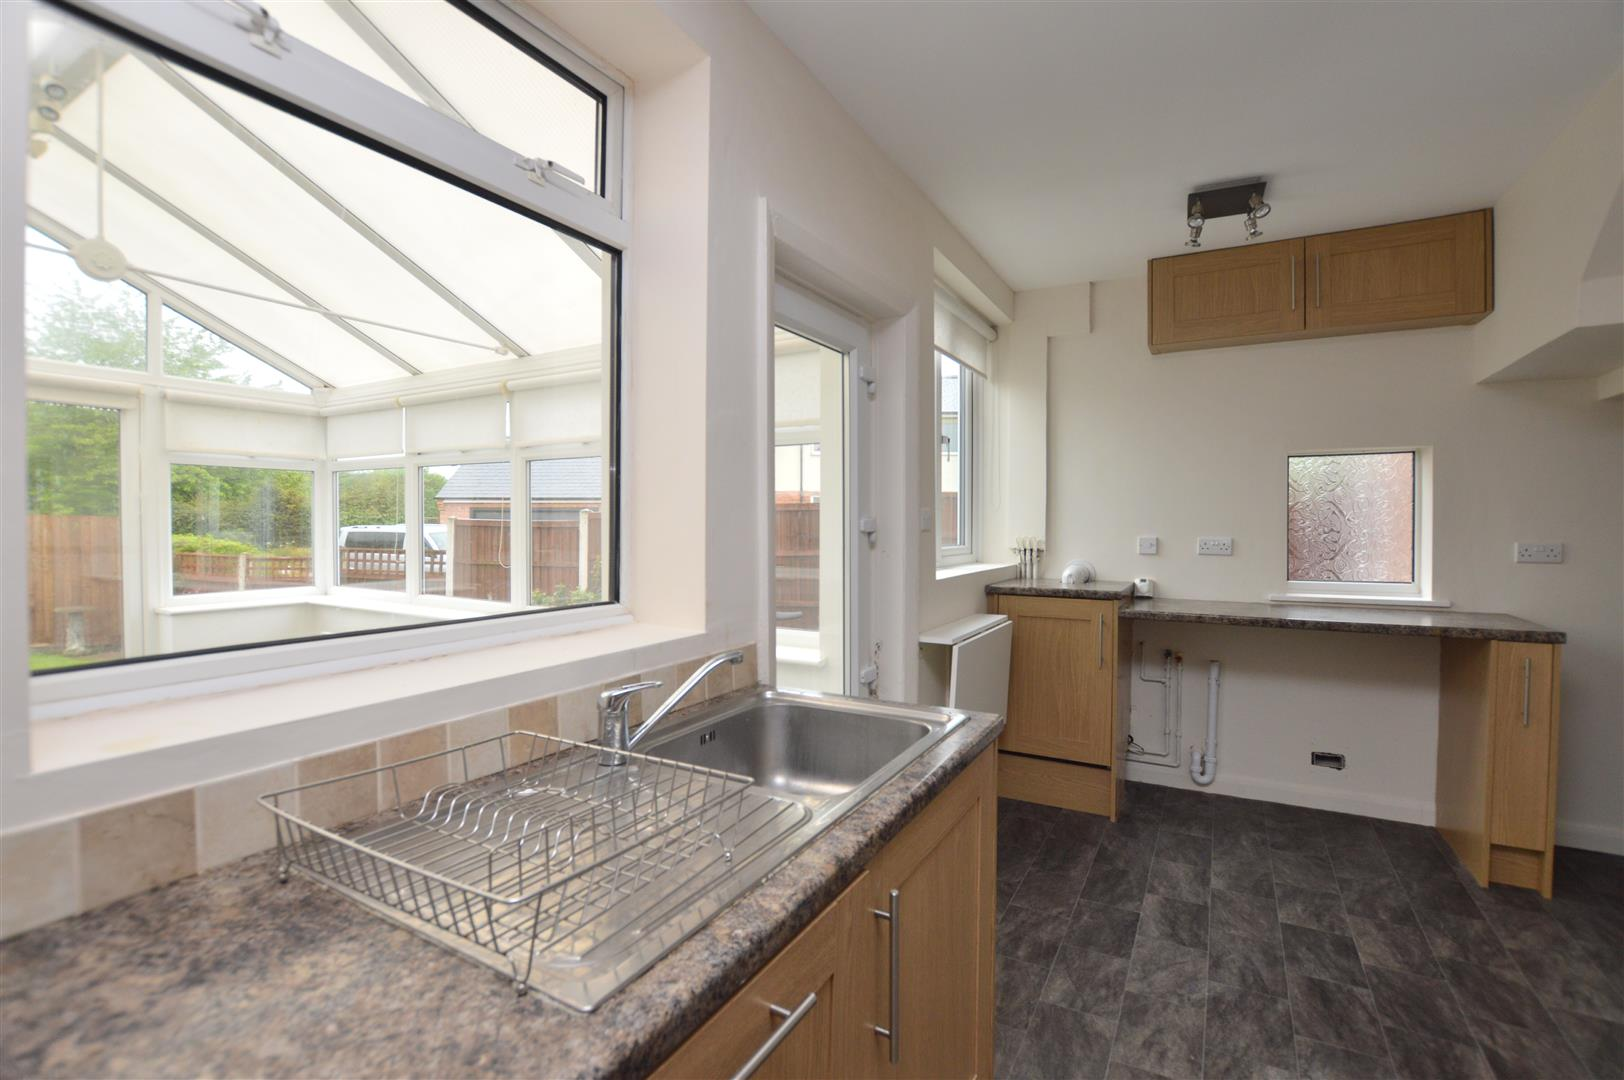 3 Bedroom End Of Terrace House For Sale In Belper